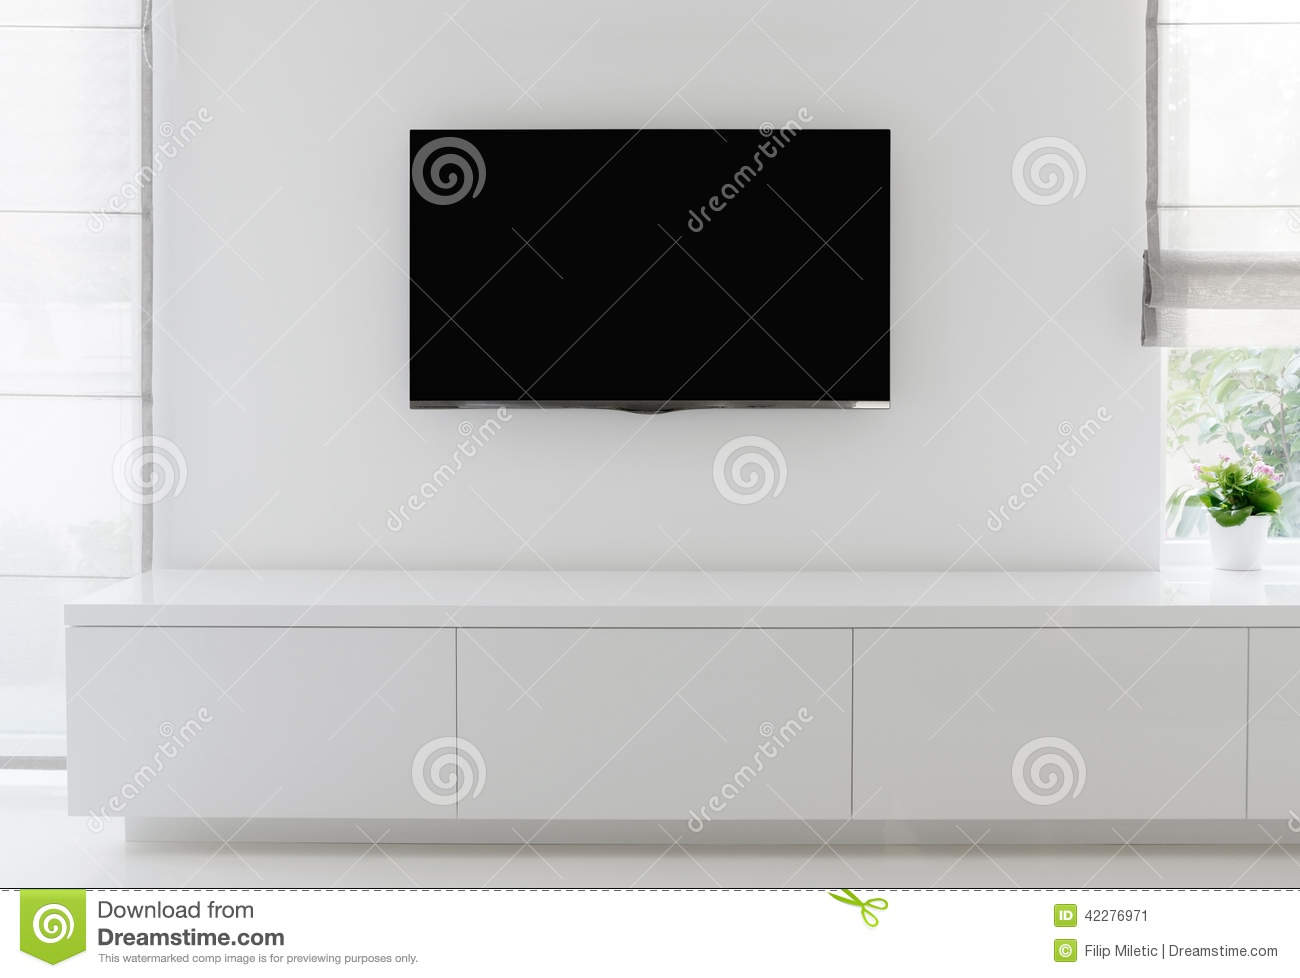 Living Room Detail Tv On Wall Stock Image - Image of residential ...